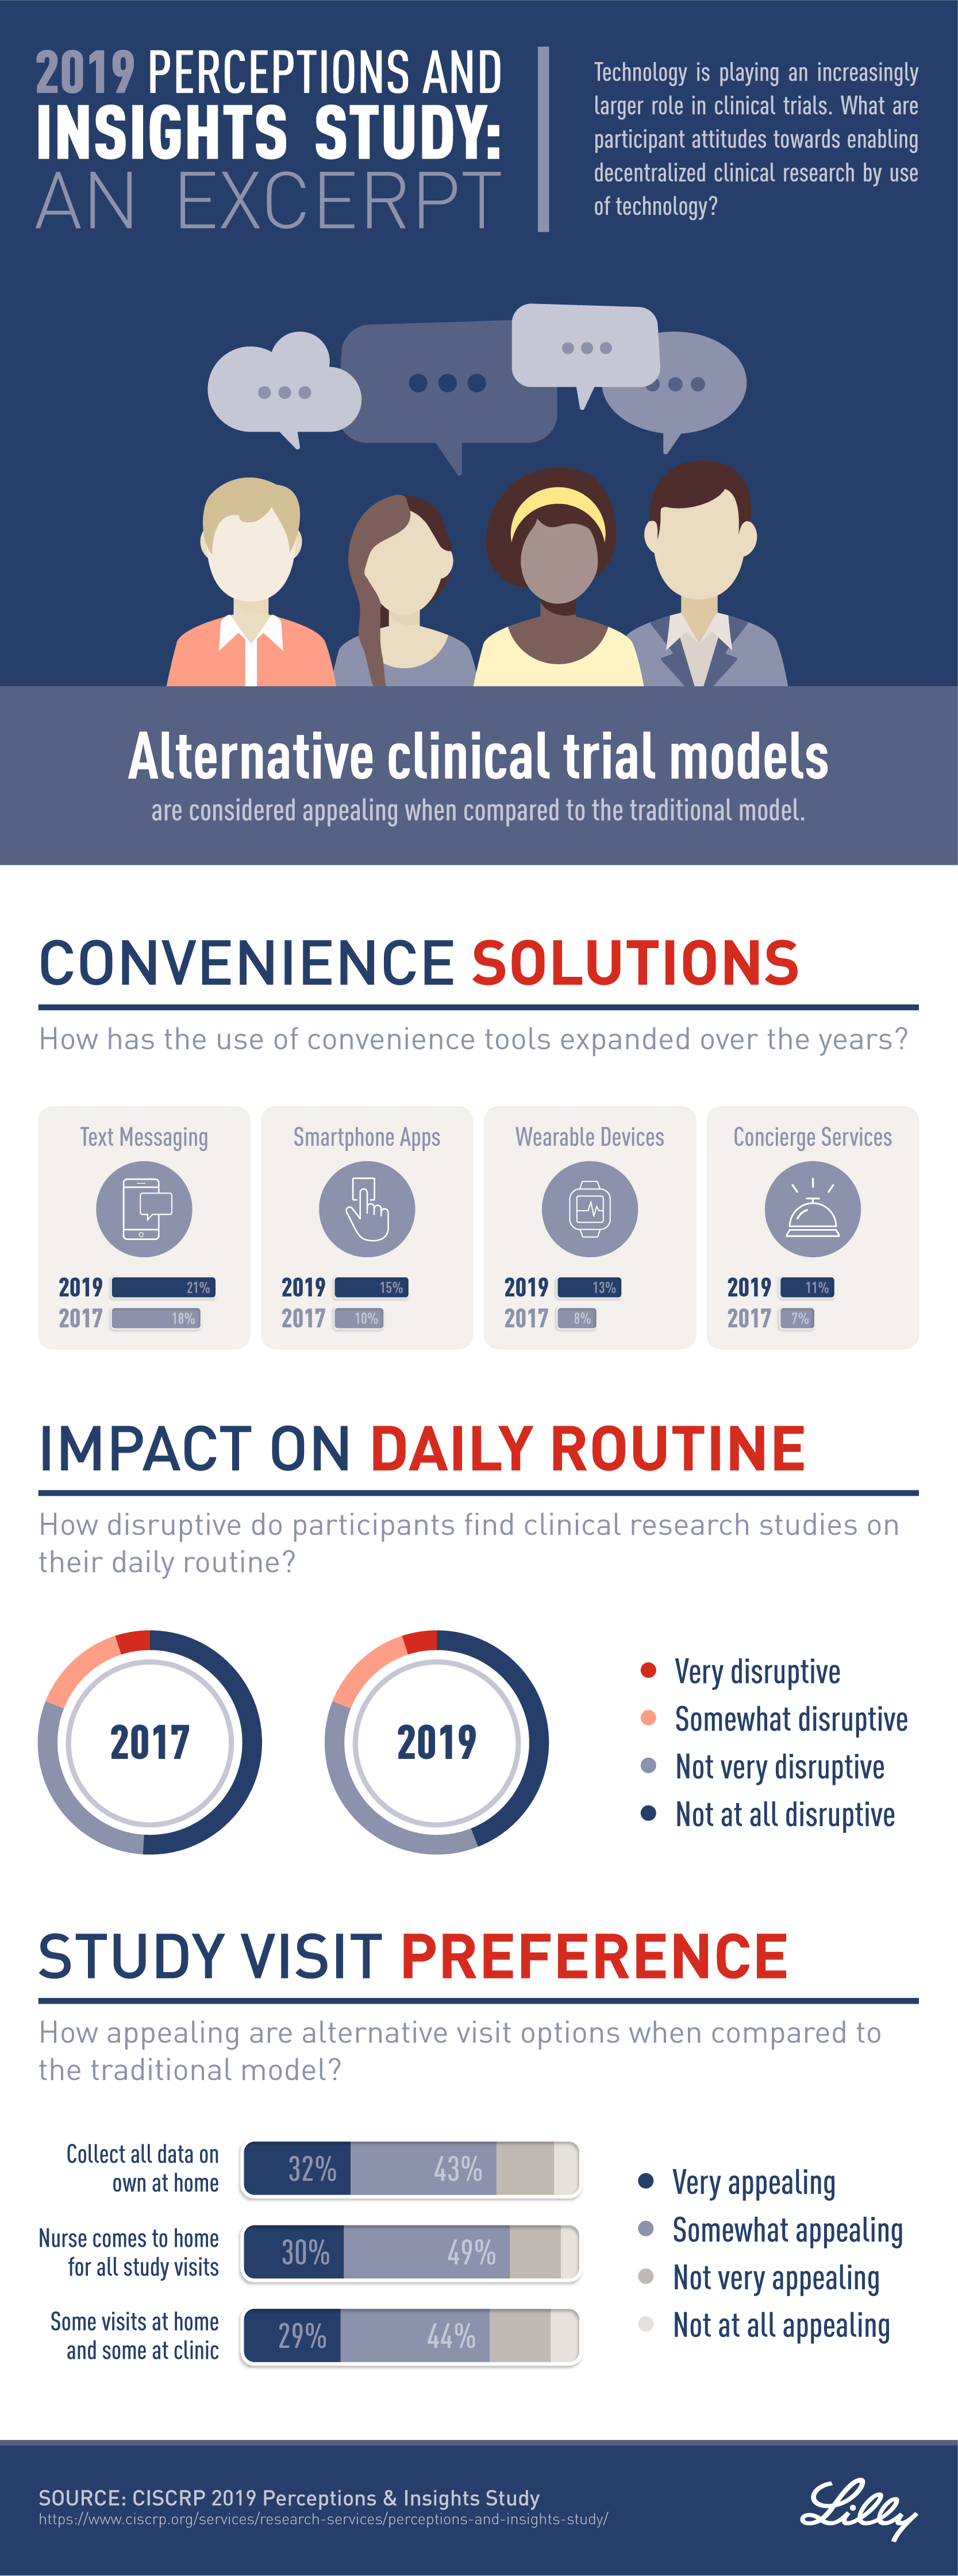 CISCRP Infographic Part 2